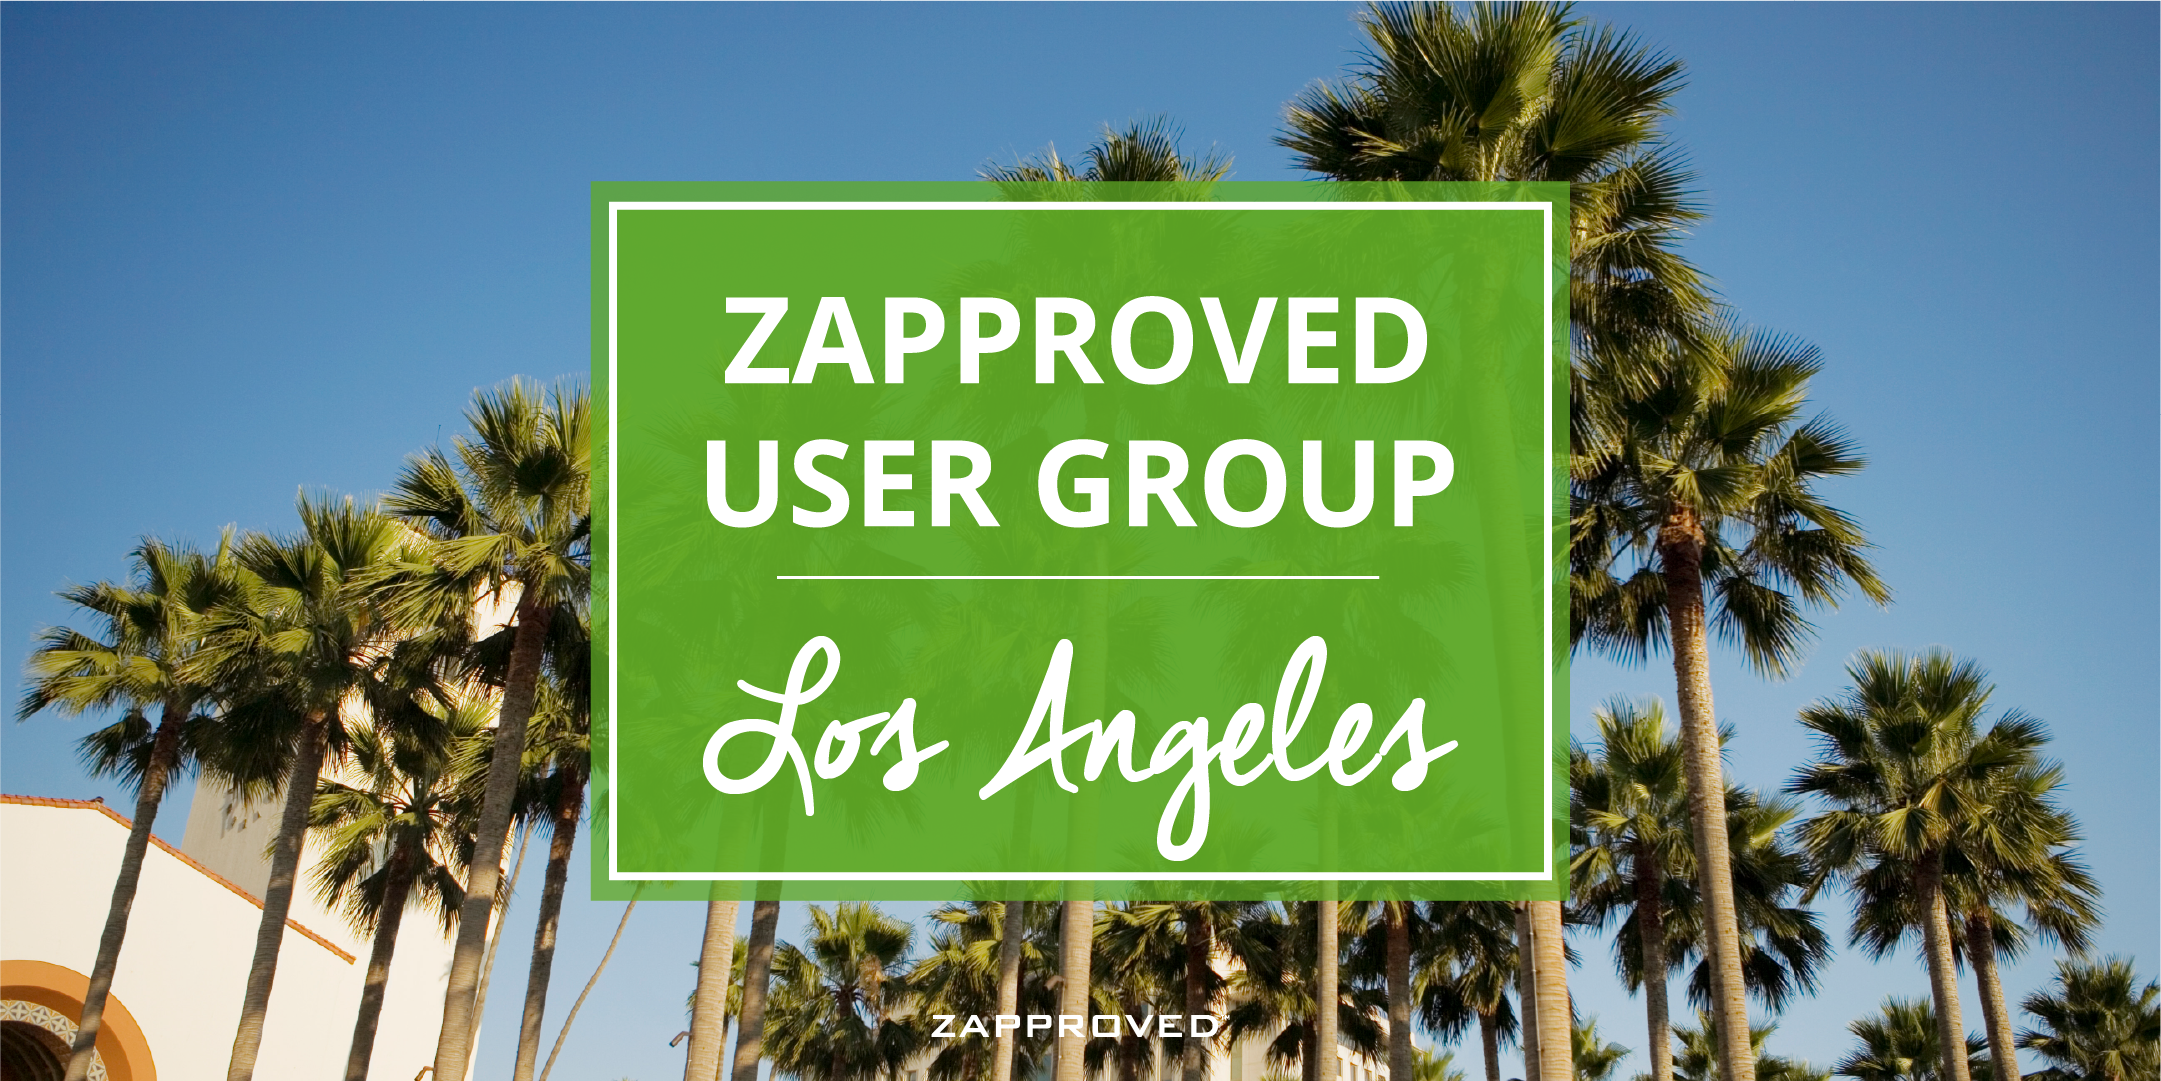 Zapproved User Group - Los Angeles, CA